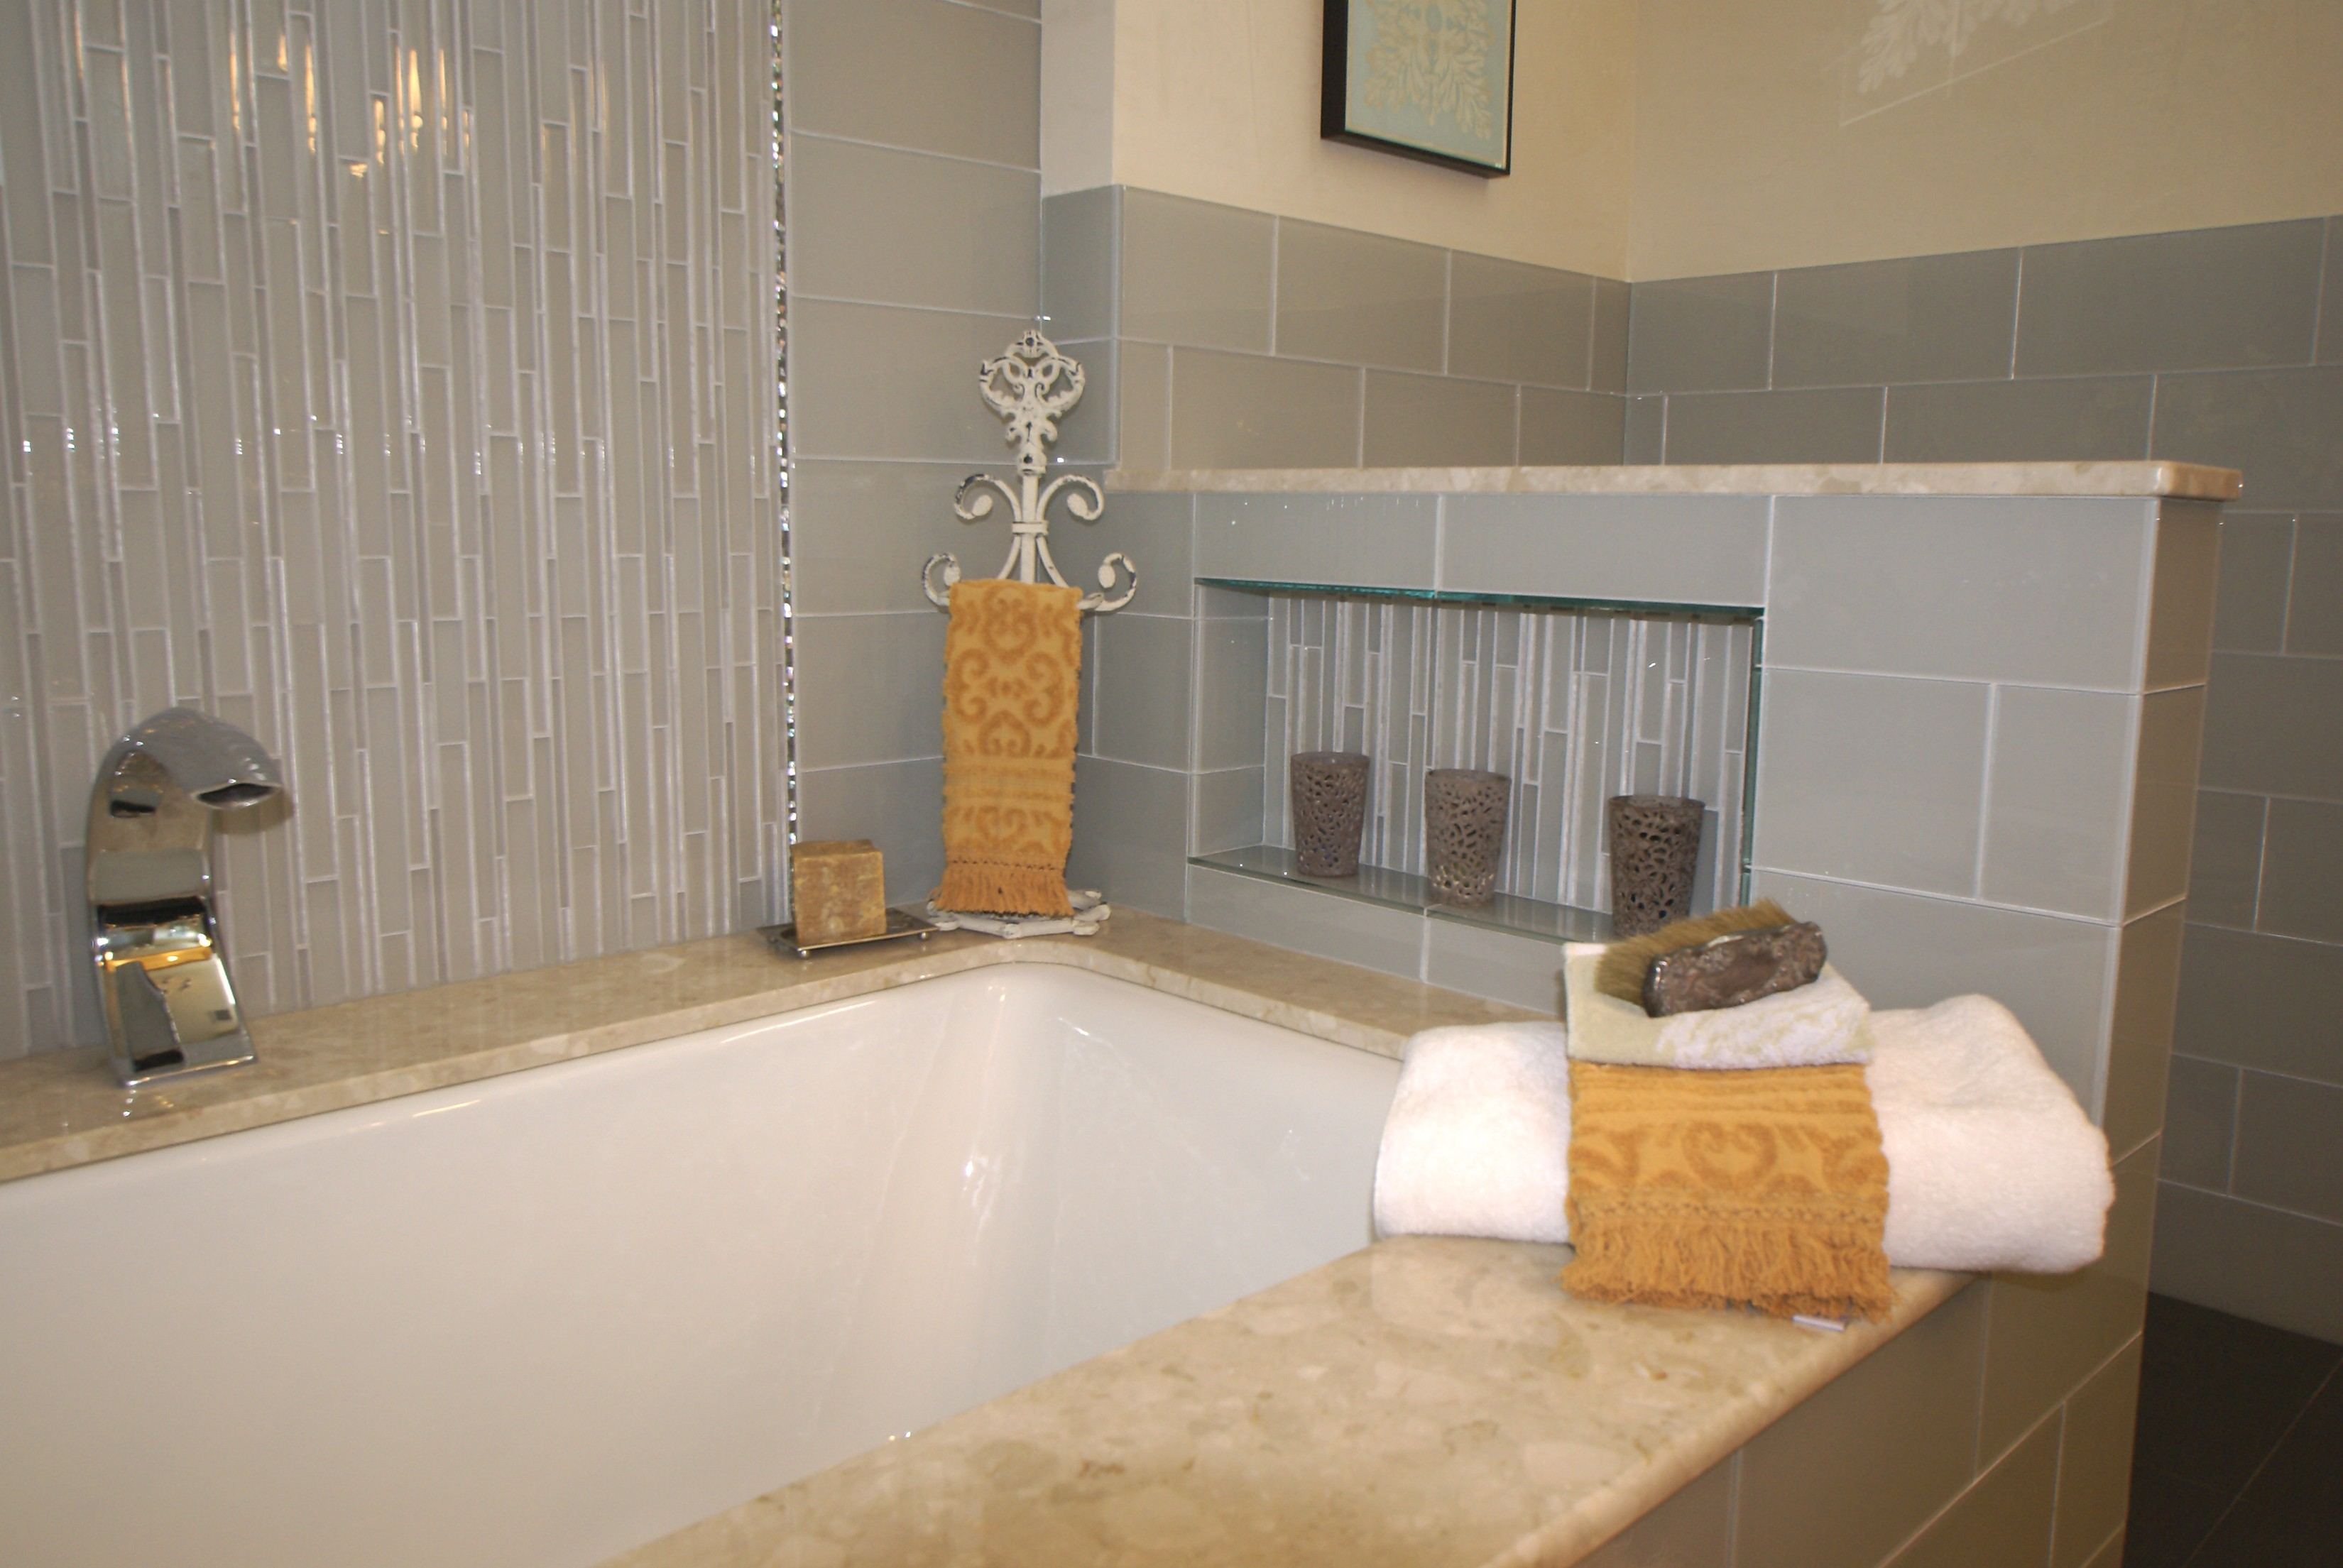 Bathroom Remodel Glass Tile remodeling projects and products - design build pros - new jersey